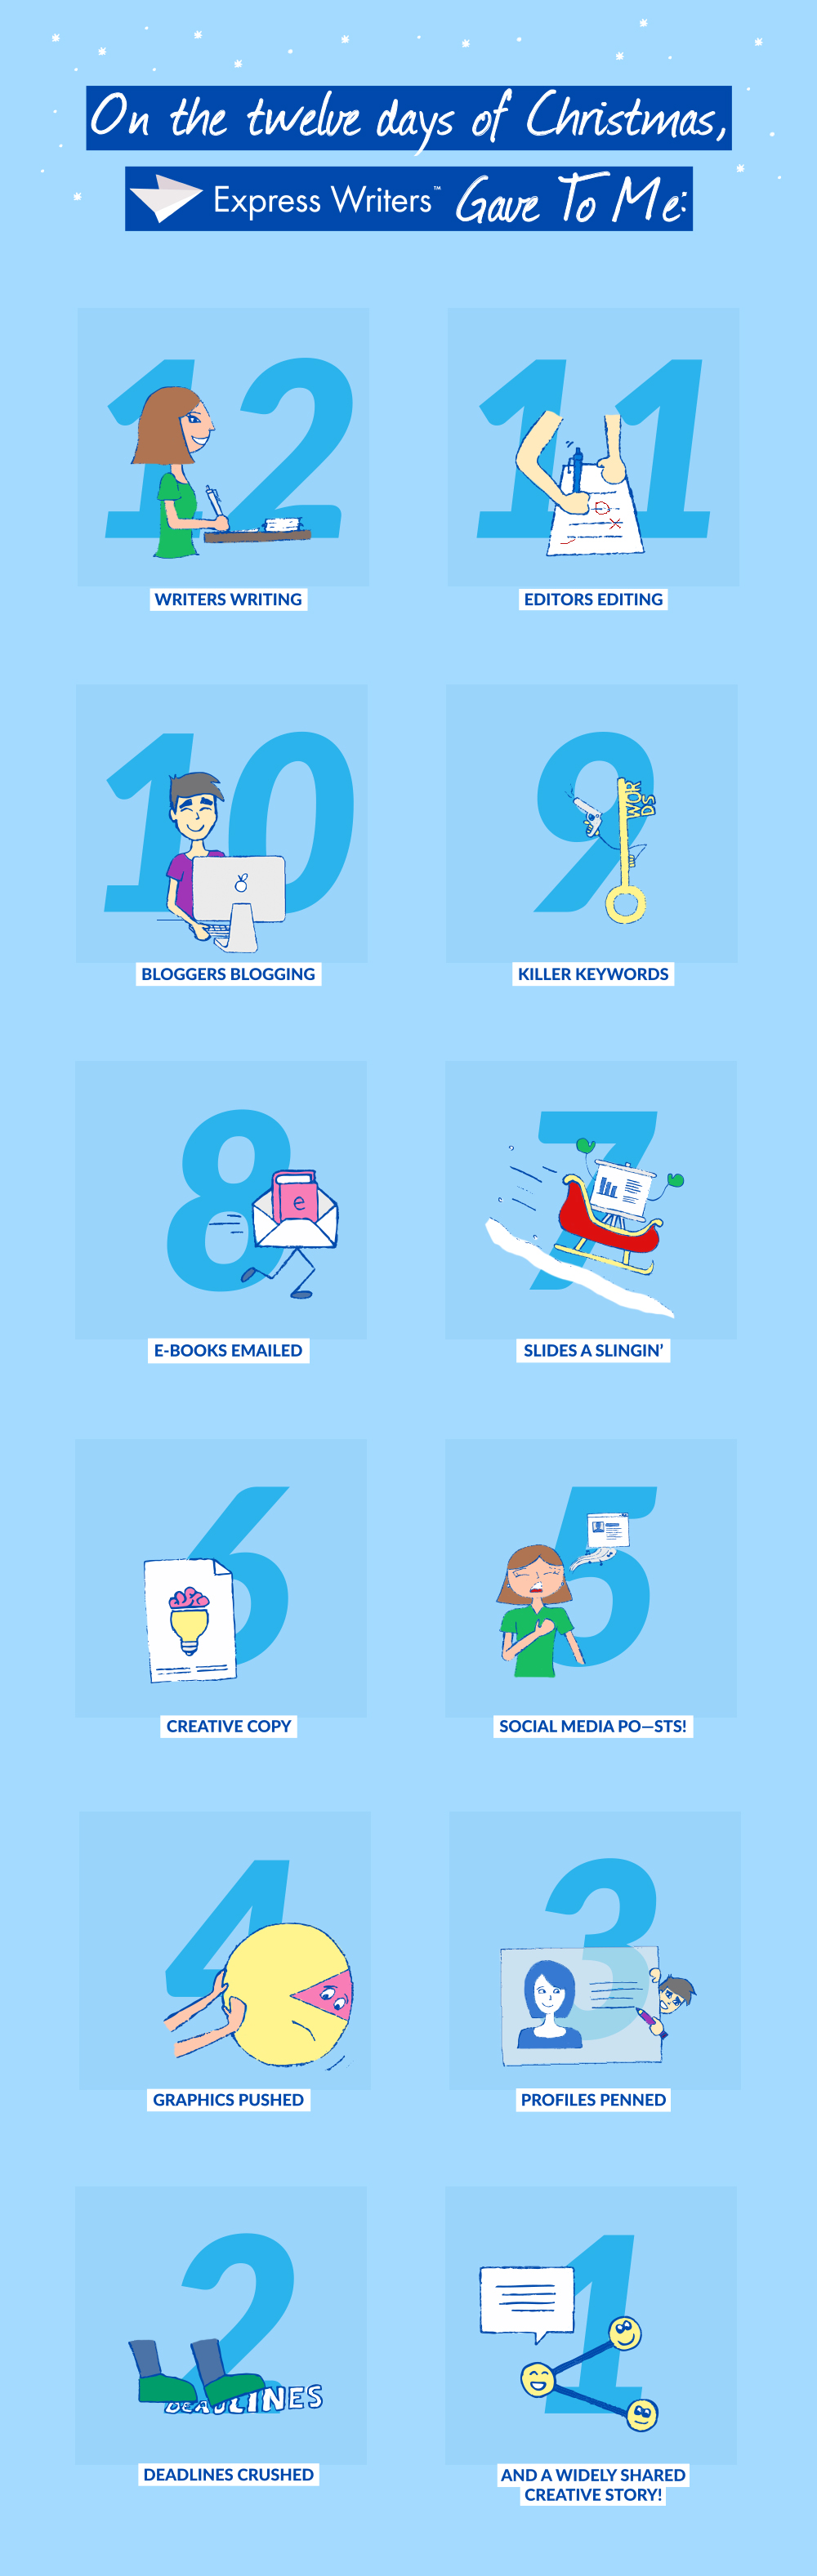 12 Days of Christmas infographic